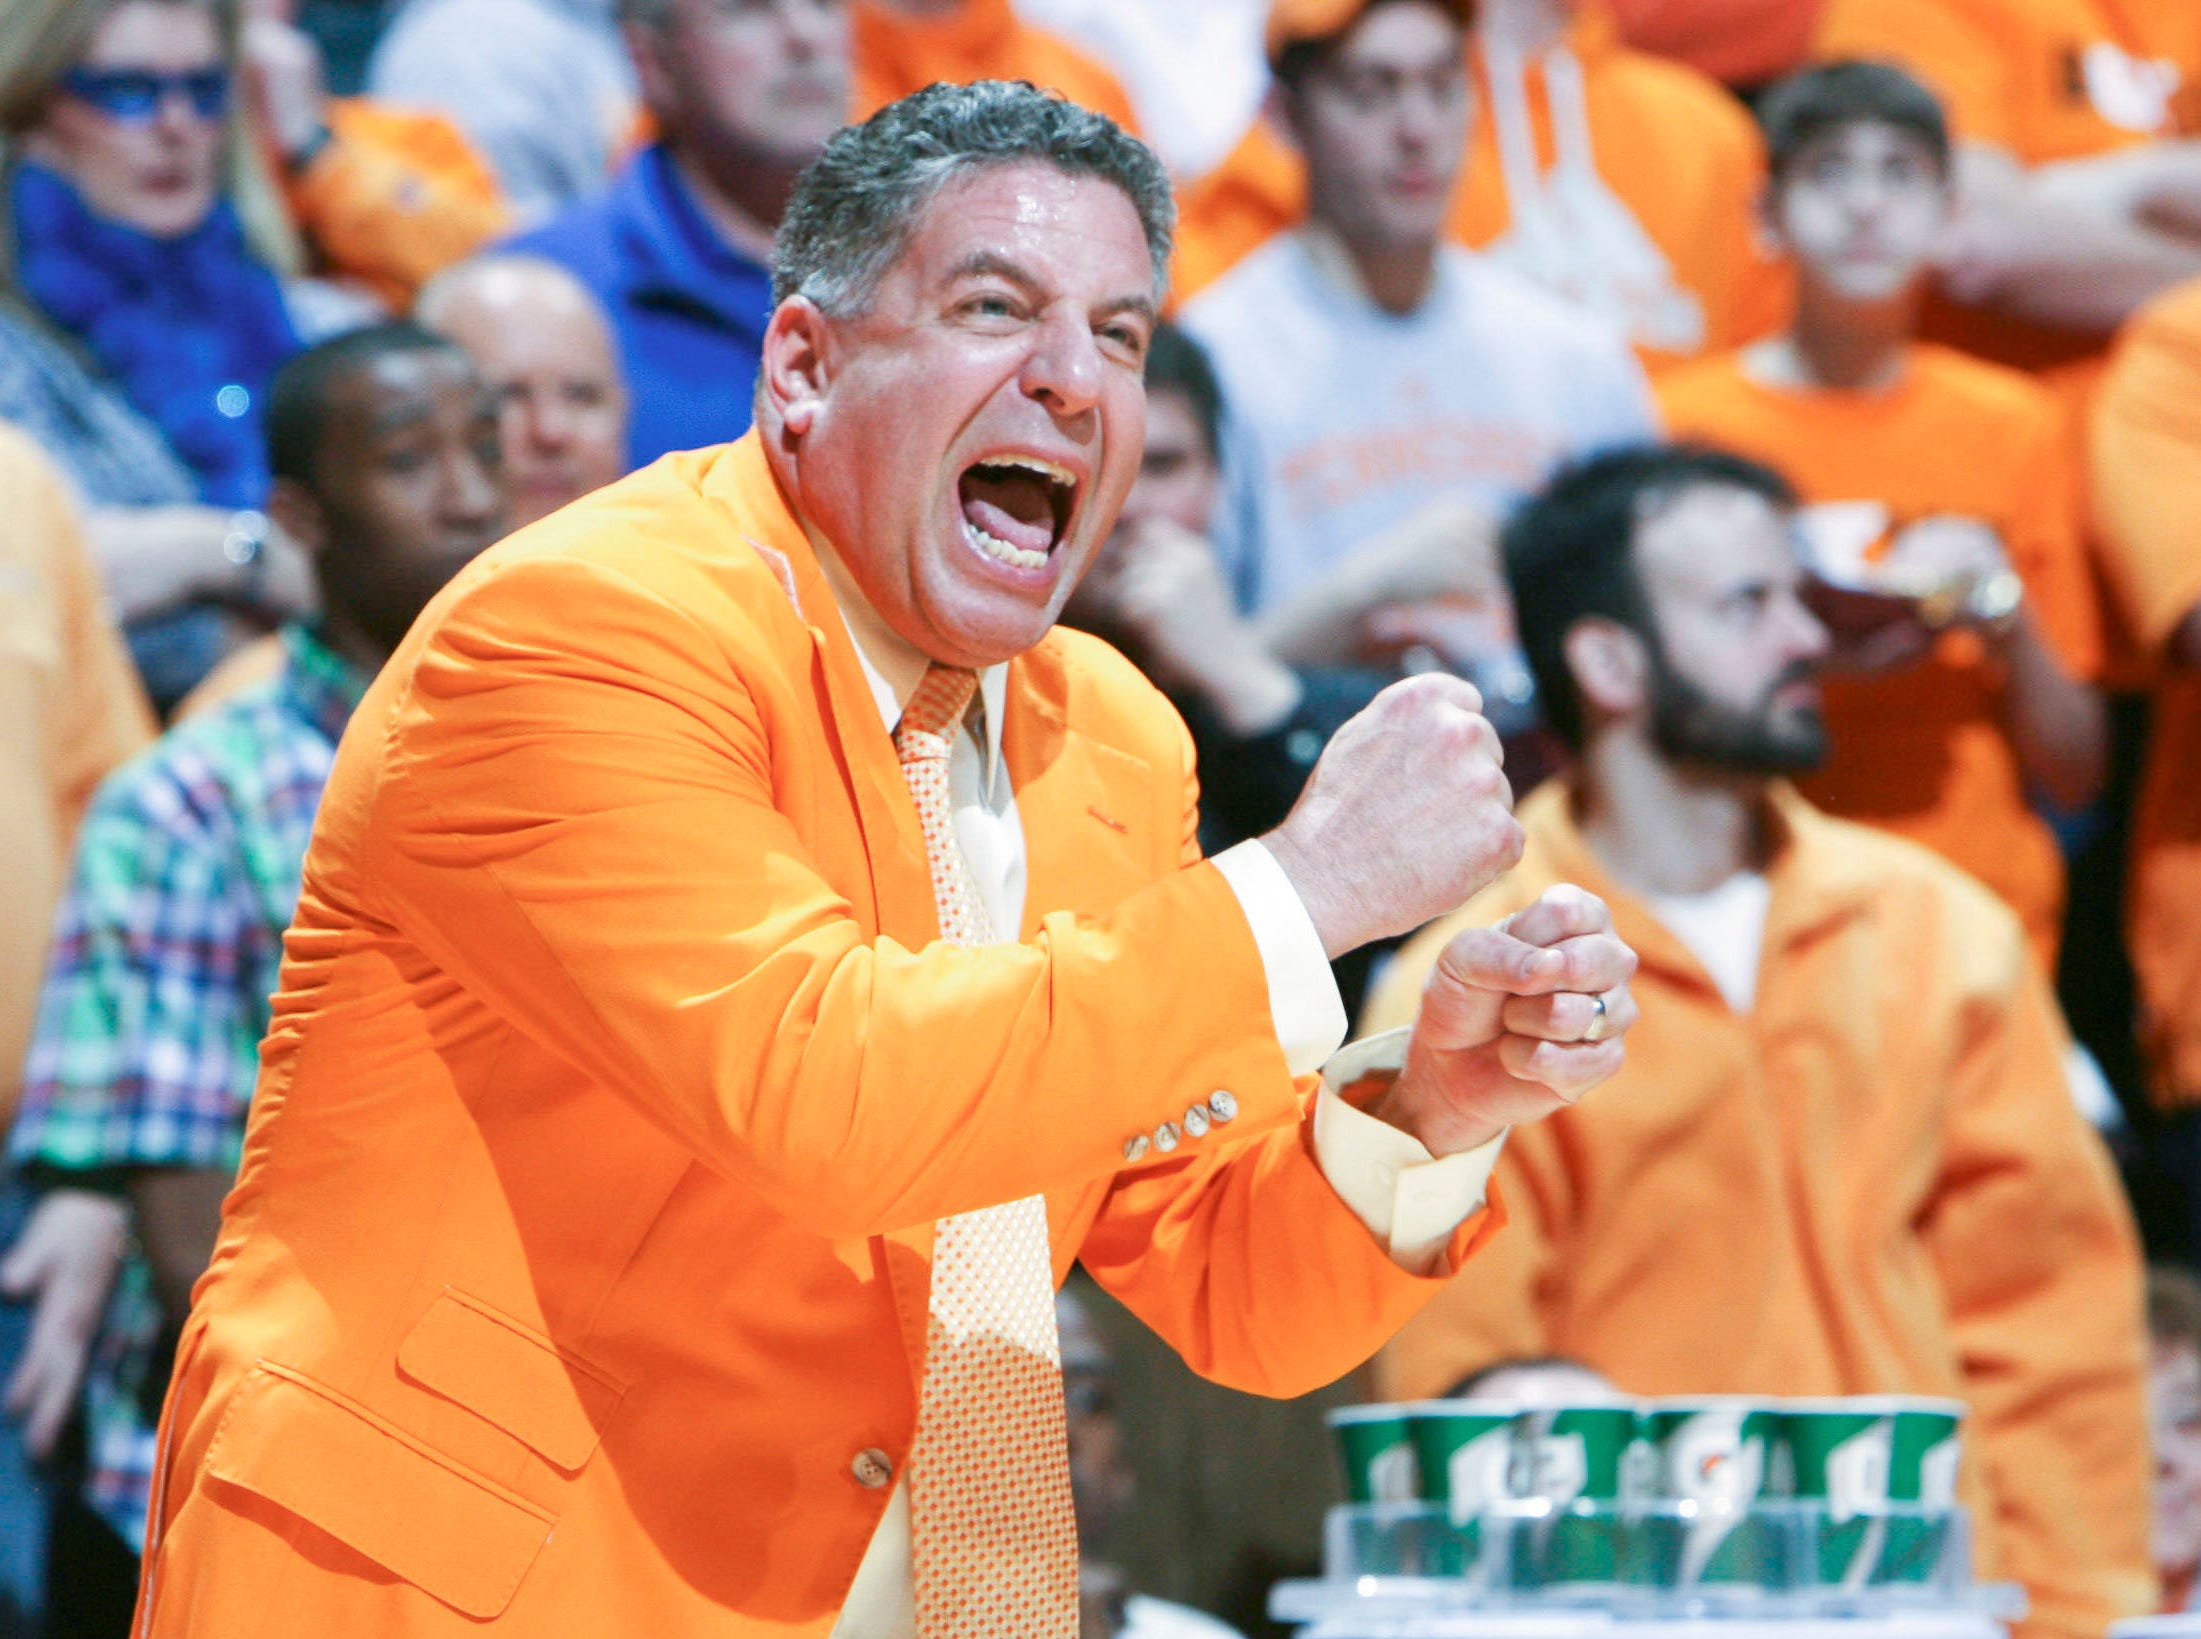 Tennessee head coach Bruce Pearl calls a play during the game against Kentucky at Thompson-Boling Arena Saturday, Feb. 27, 2010.  The Vols defeated the Wildcats 74-65.